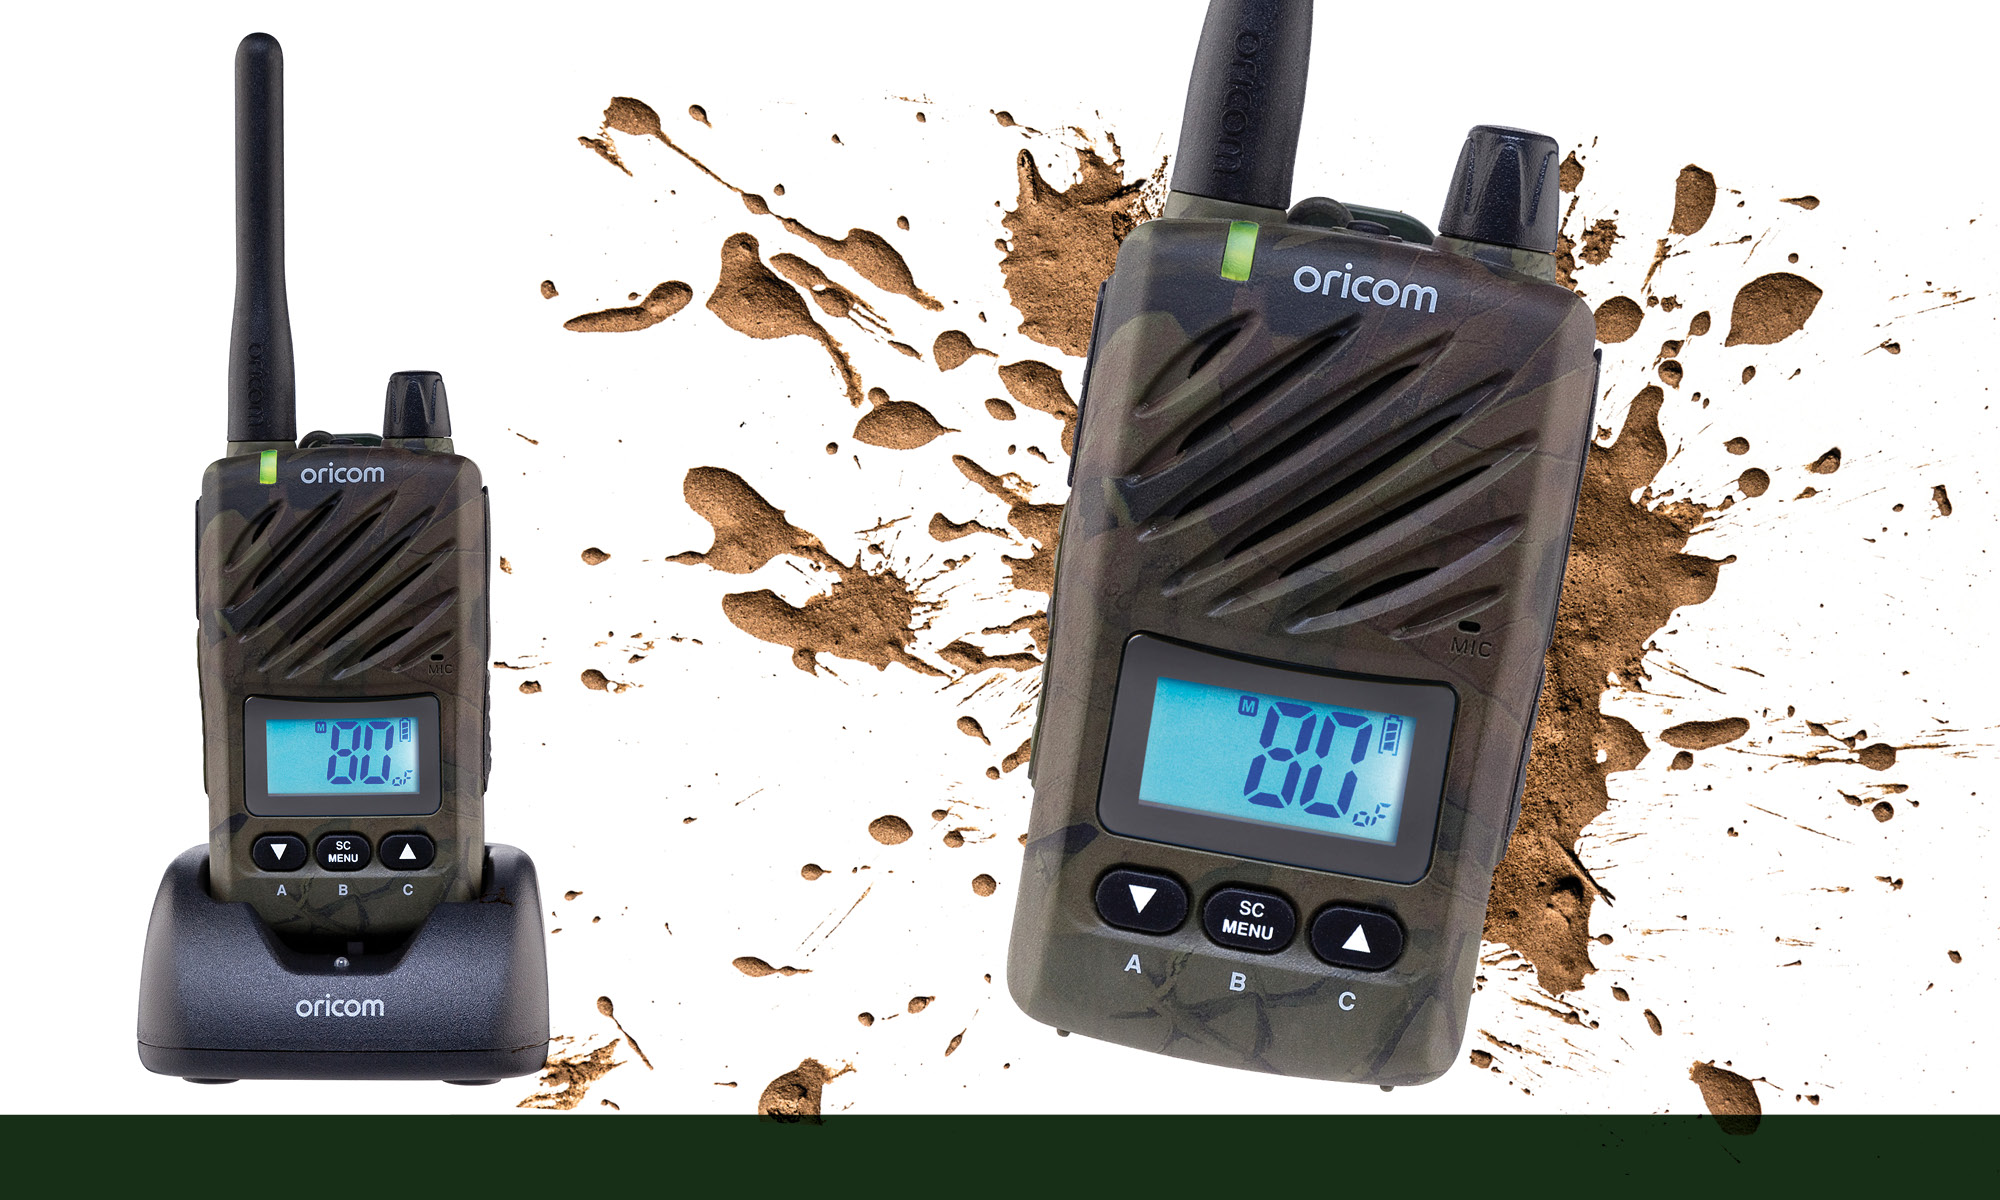 WIN AN ORICOM ULTRA550 JUST IN TIME FOR FATHERS DAY!